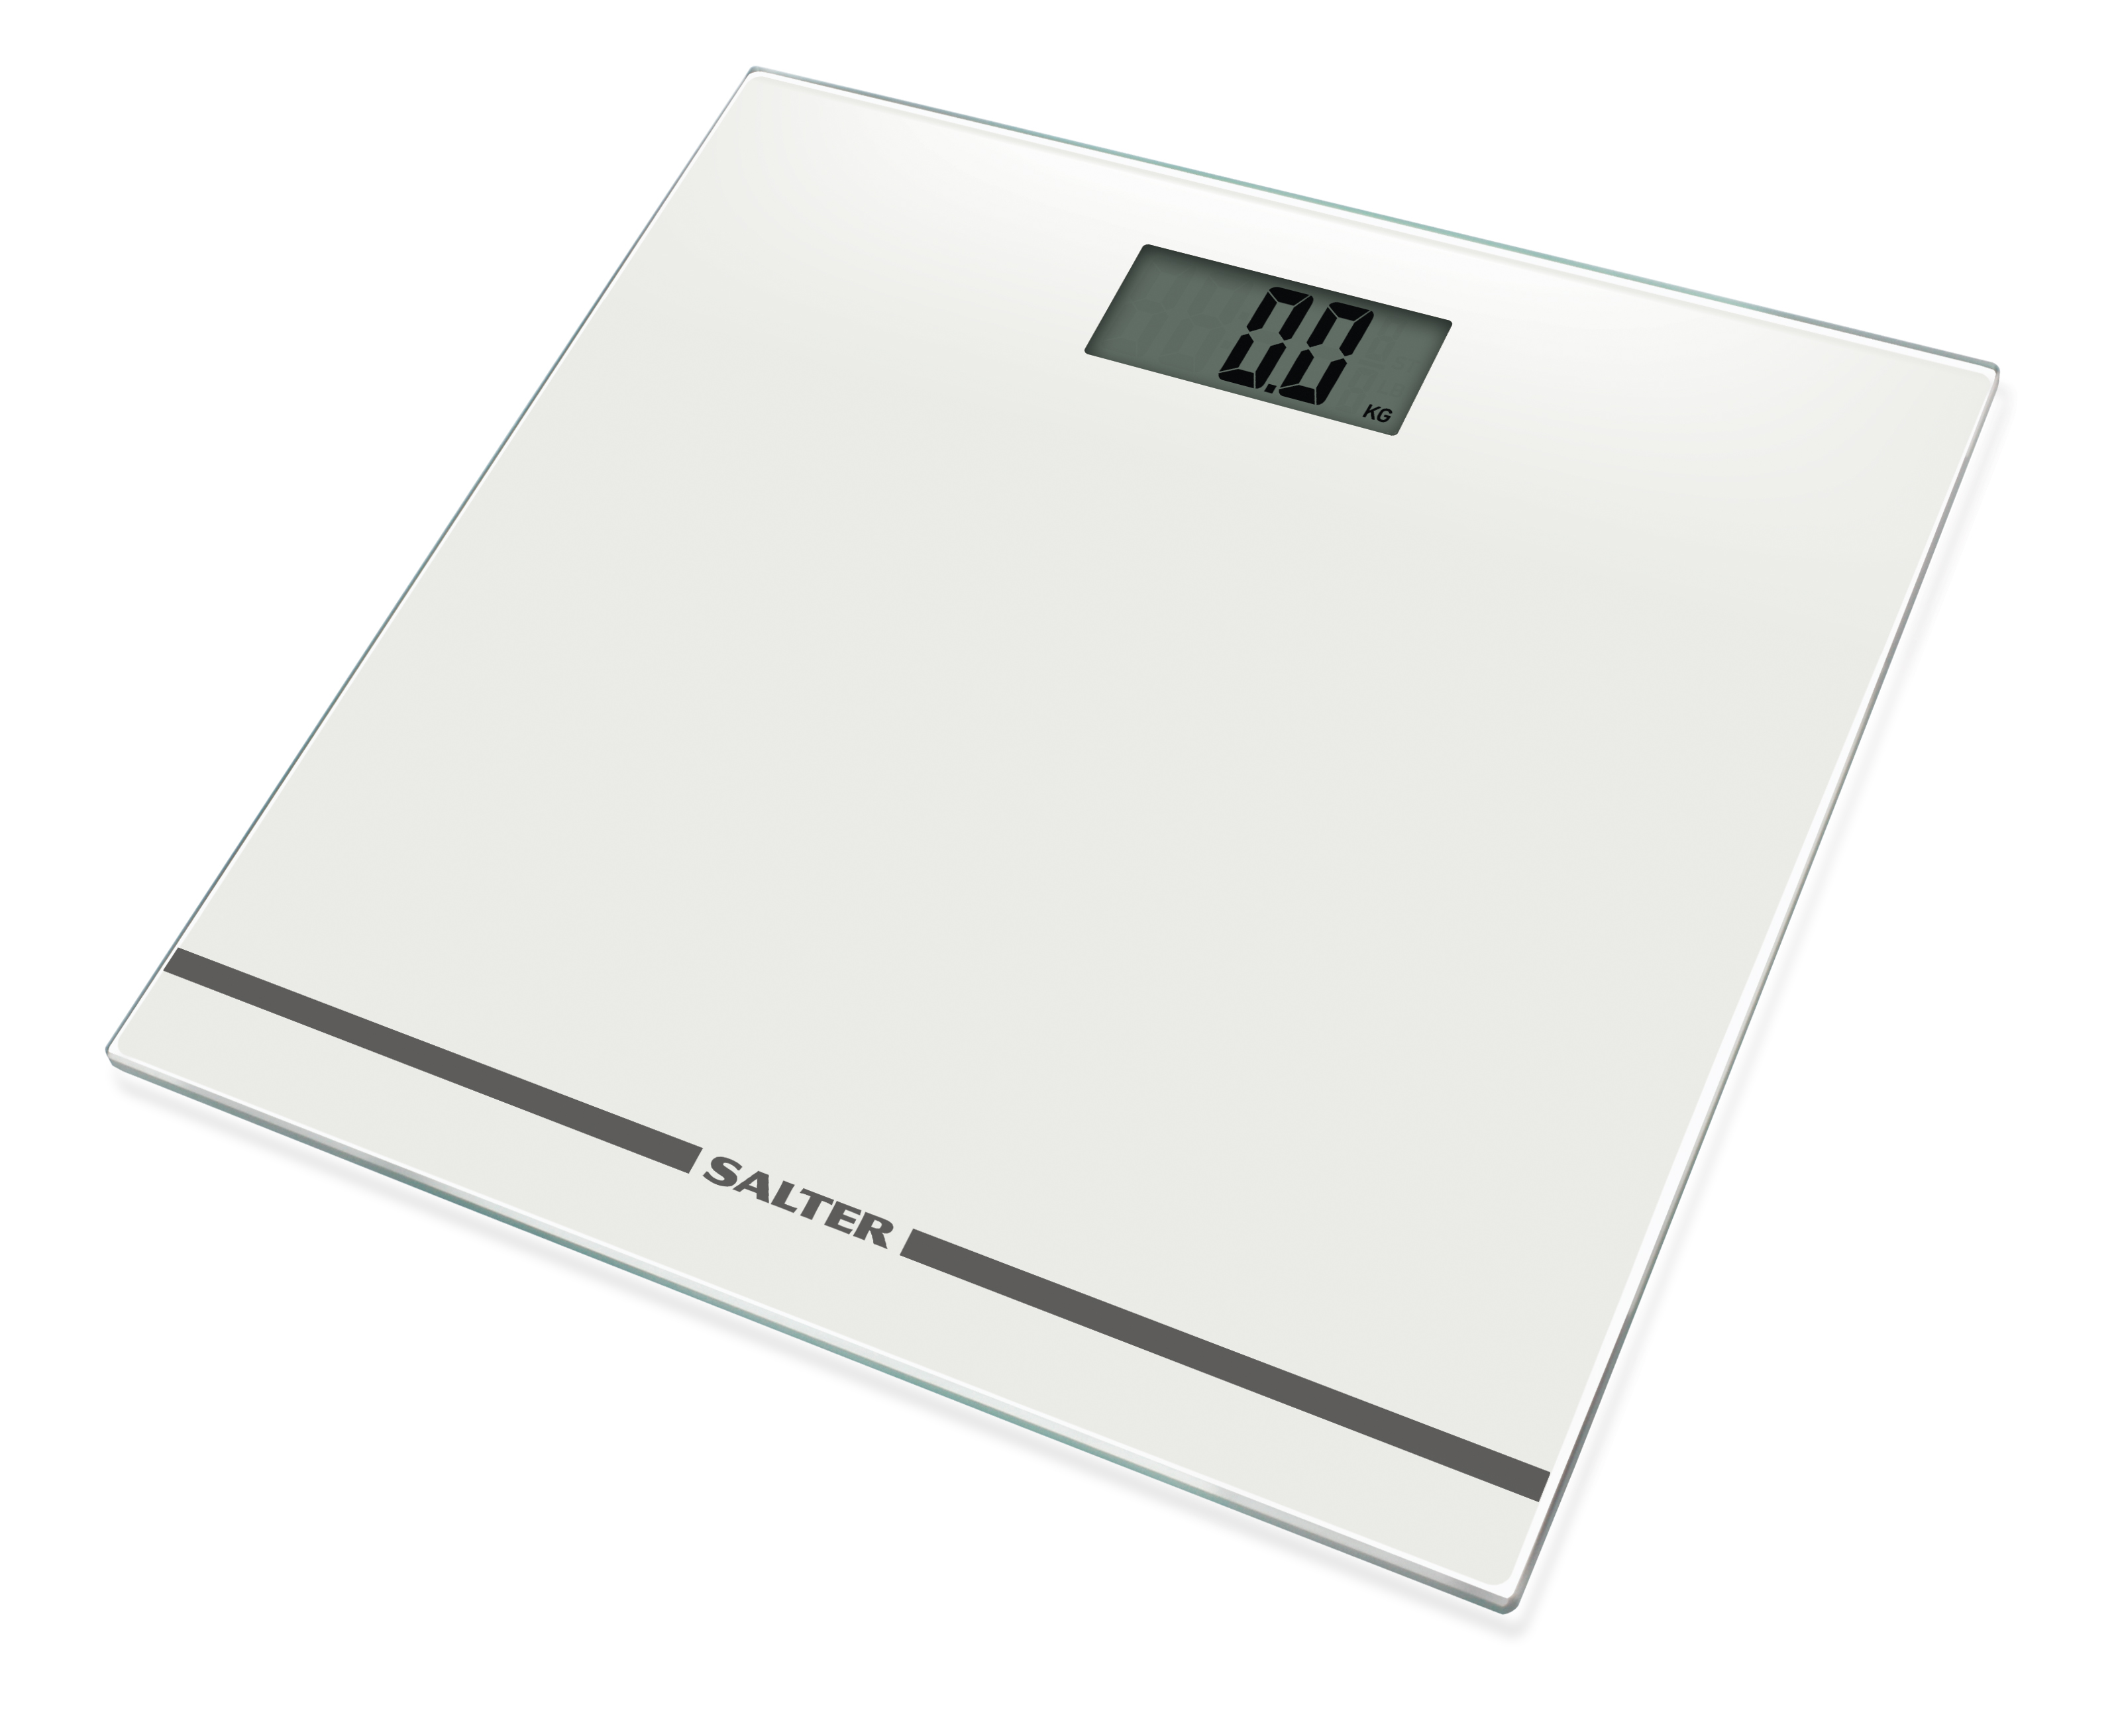 Salter Large Display Digital Bathroom Scales Easy Read Electronic Scale